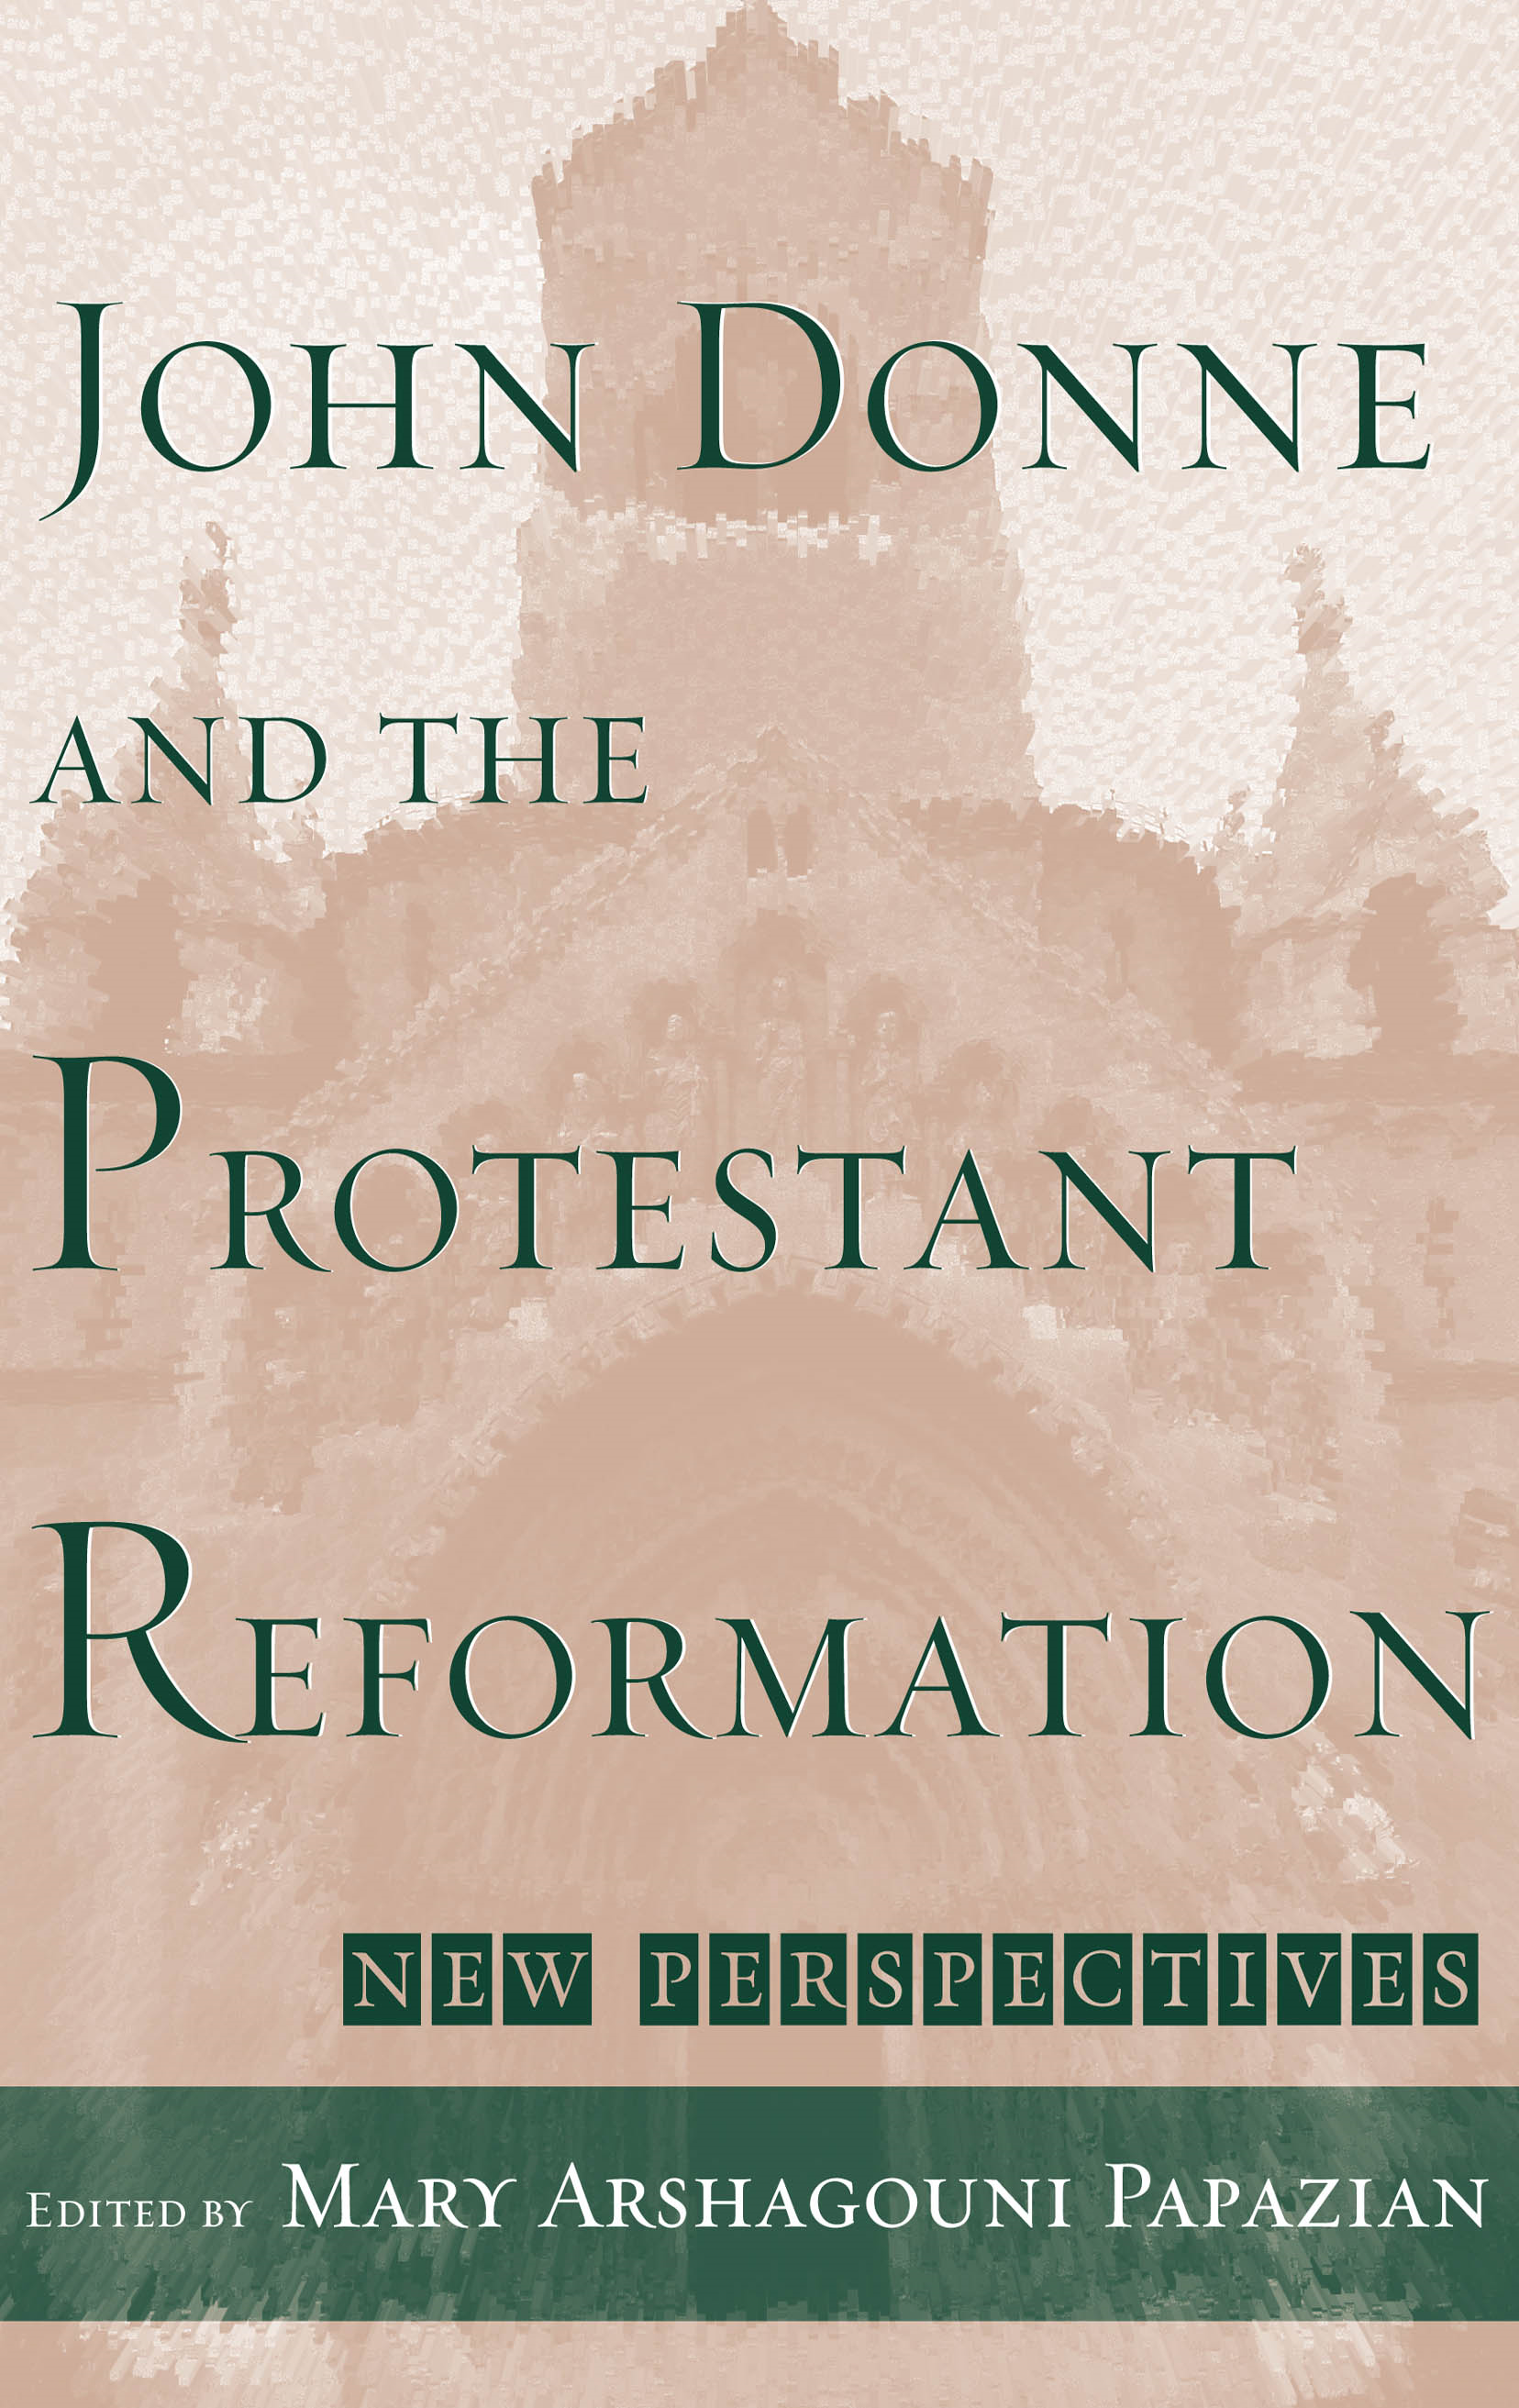 178 donne john books found the complete poetry and selected john donne and the protestant reformation author mary arshagouni papazian